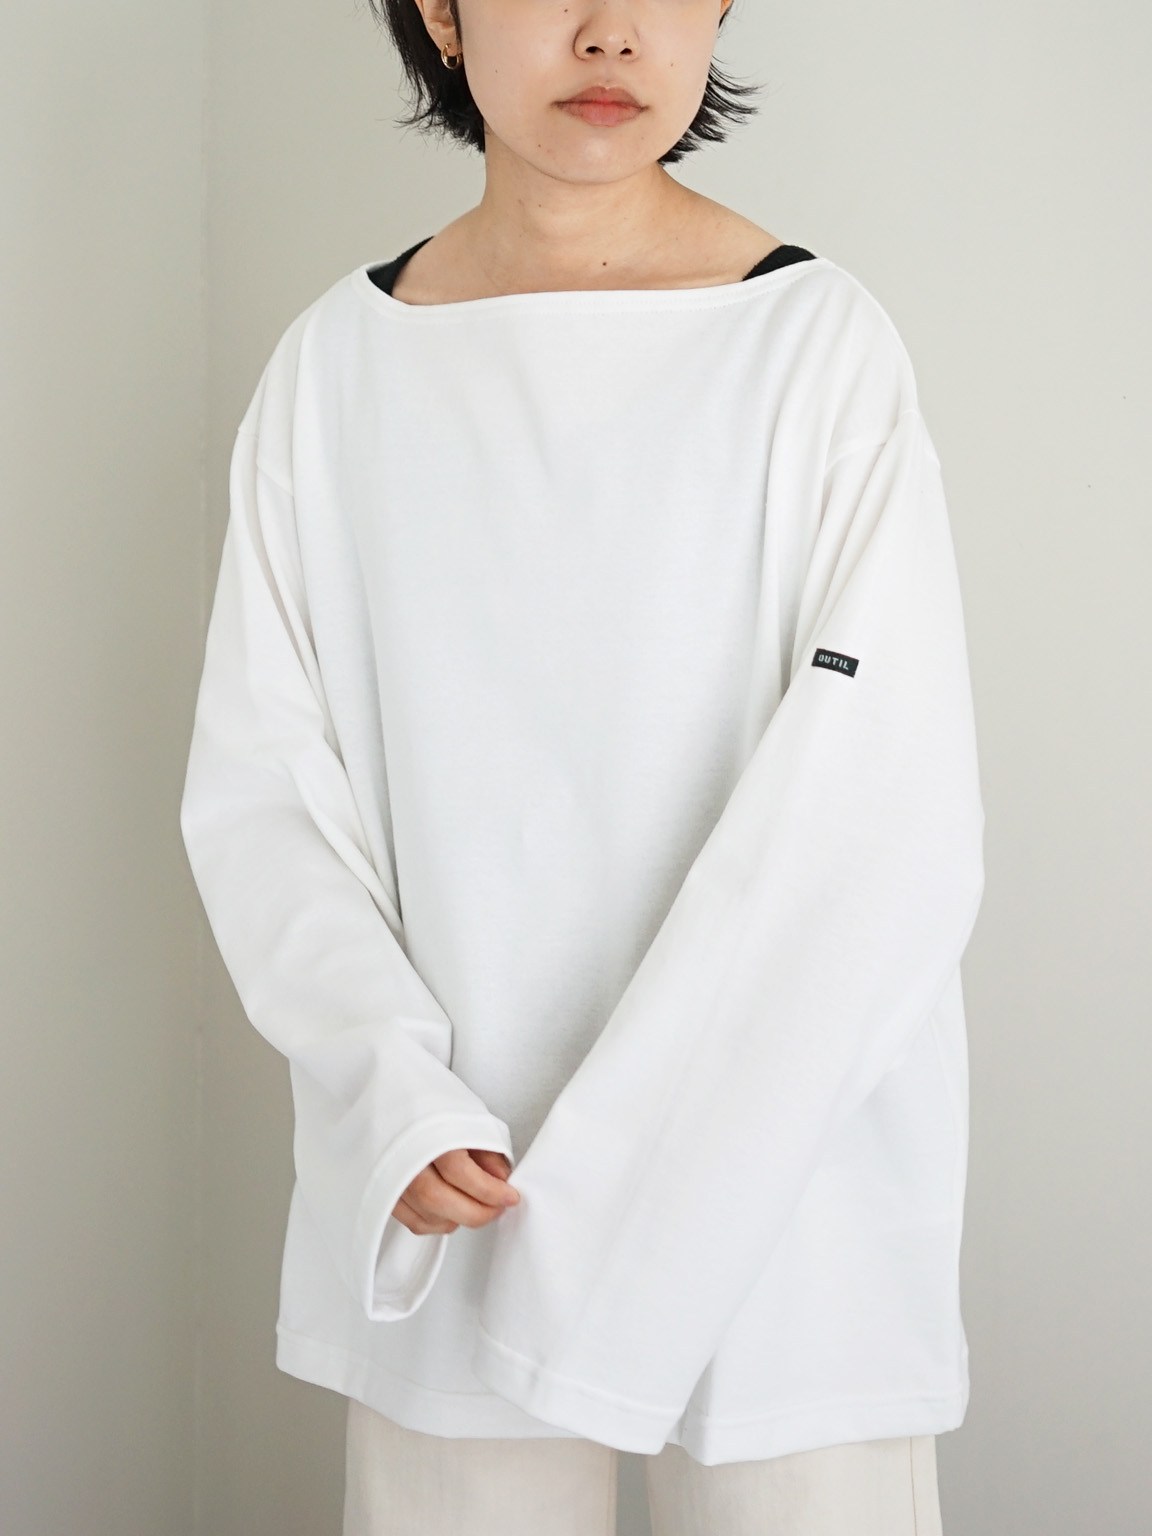 """OUTIL / TRICOT AAST """"WHITE"""""""